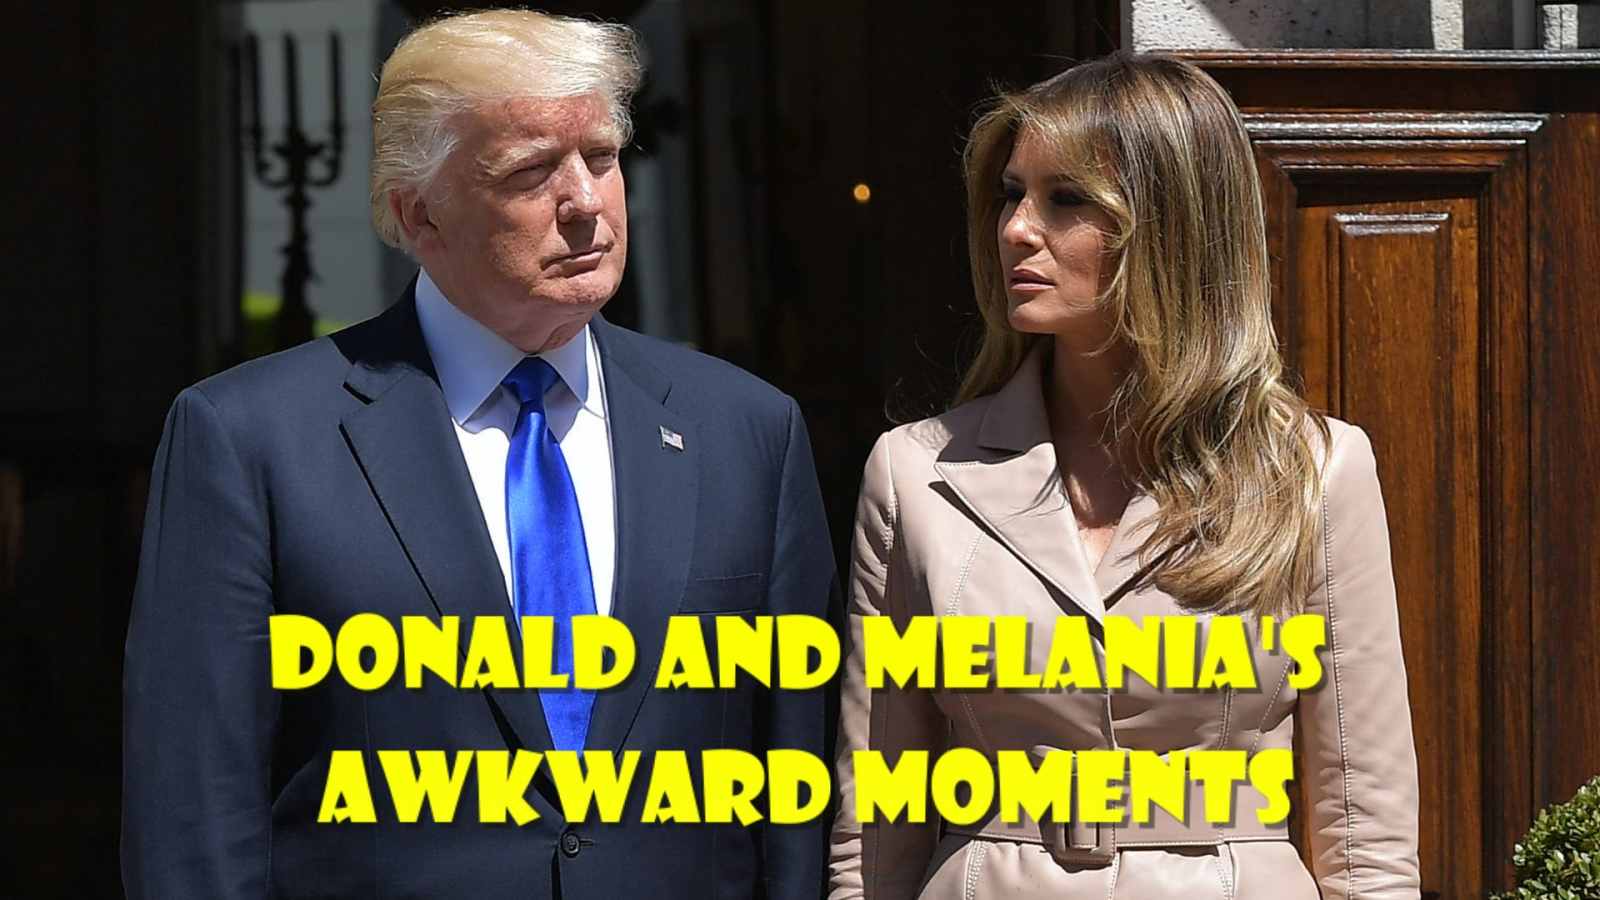 watch-donald-and-melanias-awkward-moments